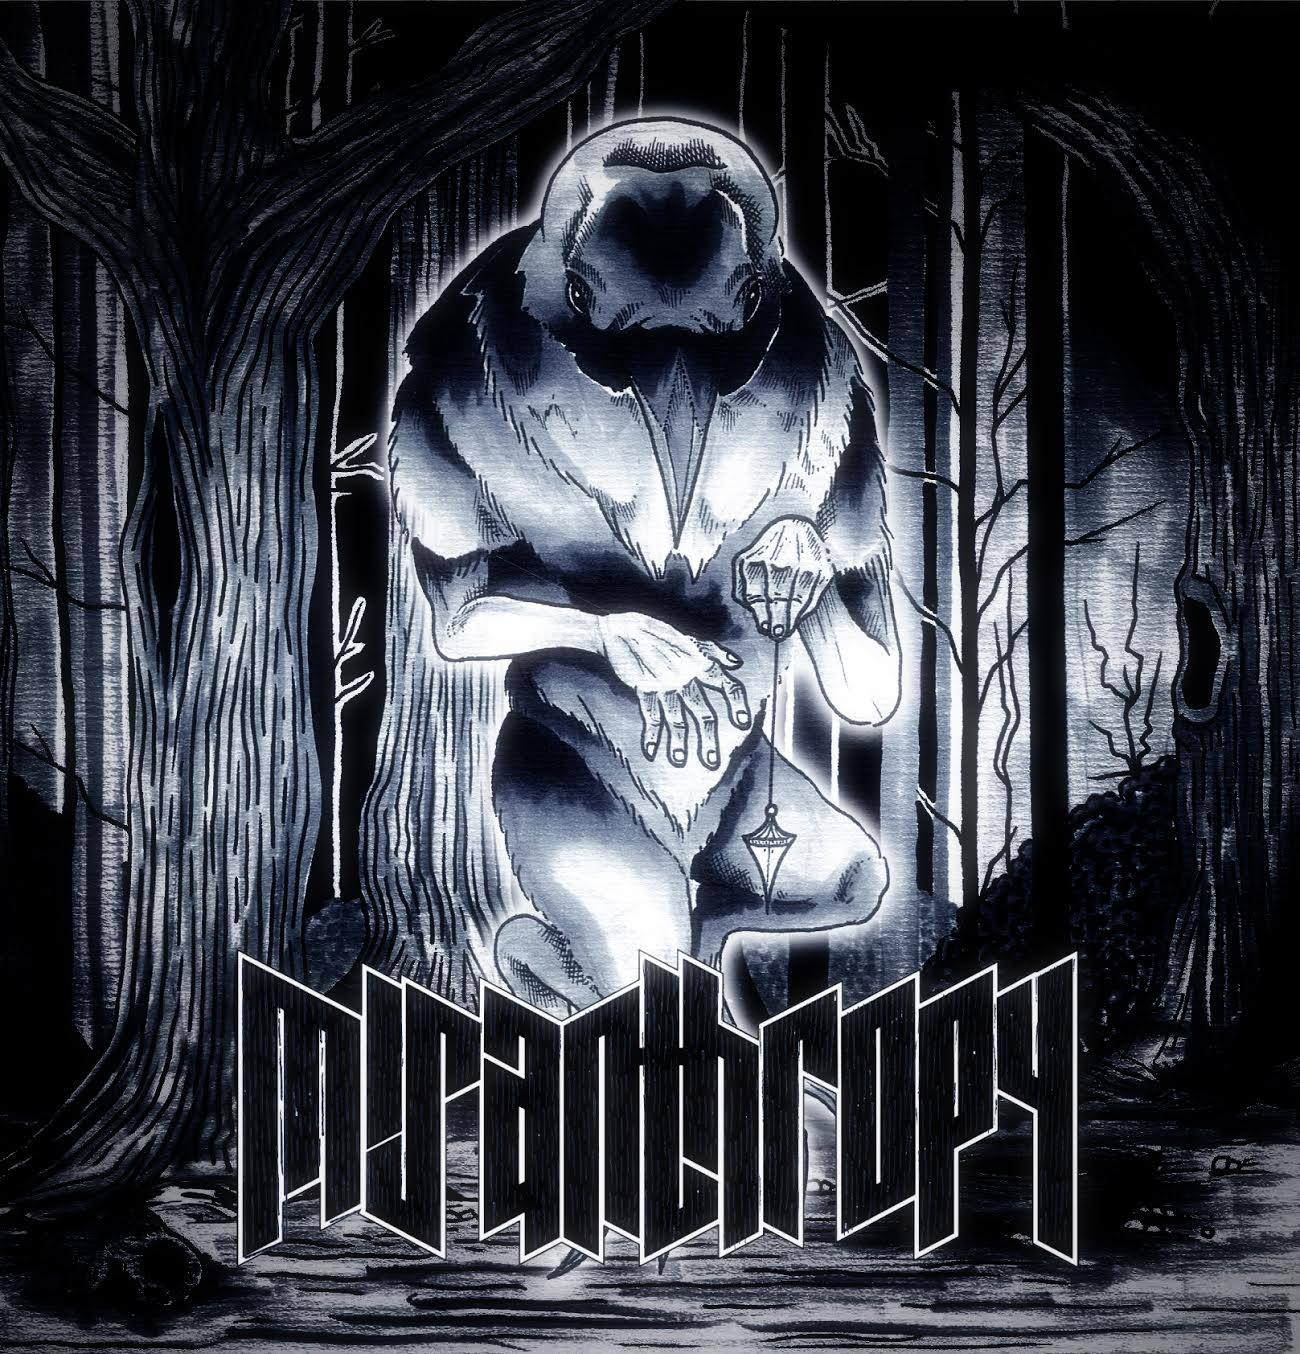 misanthrope review Have you heard ded yet i just saw them on the korn tour, and if you haven't heard them, then you are missing out on a great band ded originated in tempe, arizona.